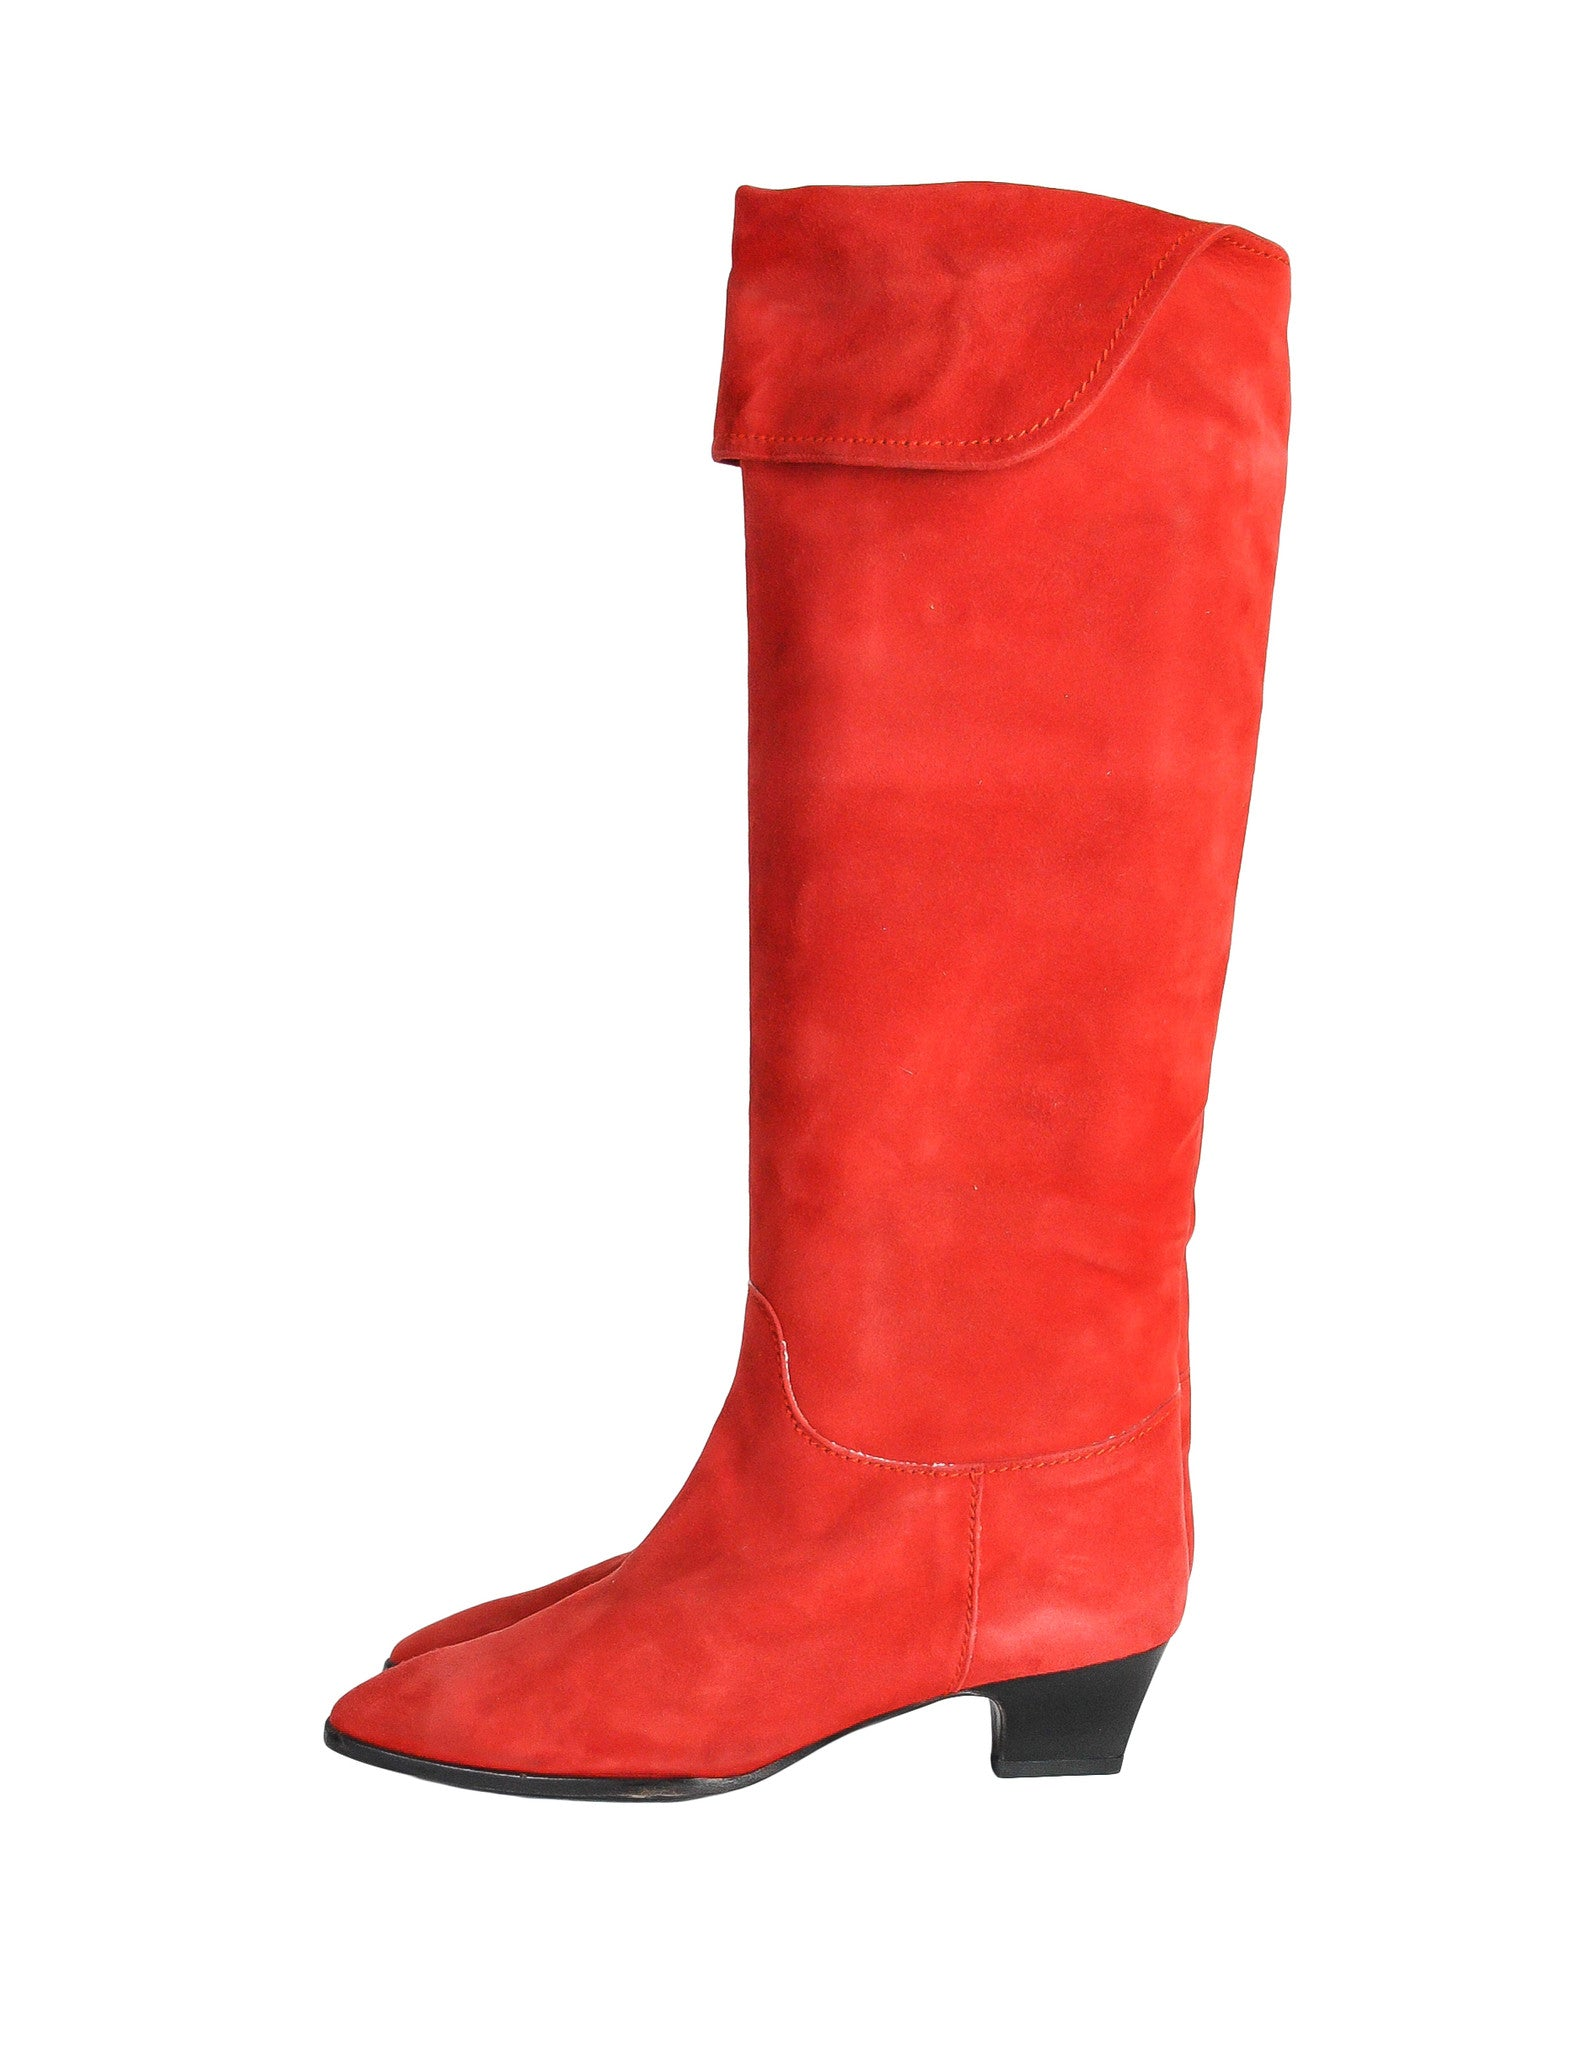 lowest price Charles Jourdan Suede Knee-High Boots from china cheap price wiki cheap online quality free shipping outlet jhQomZVVFn